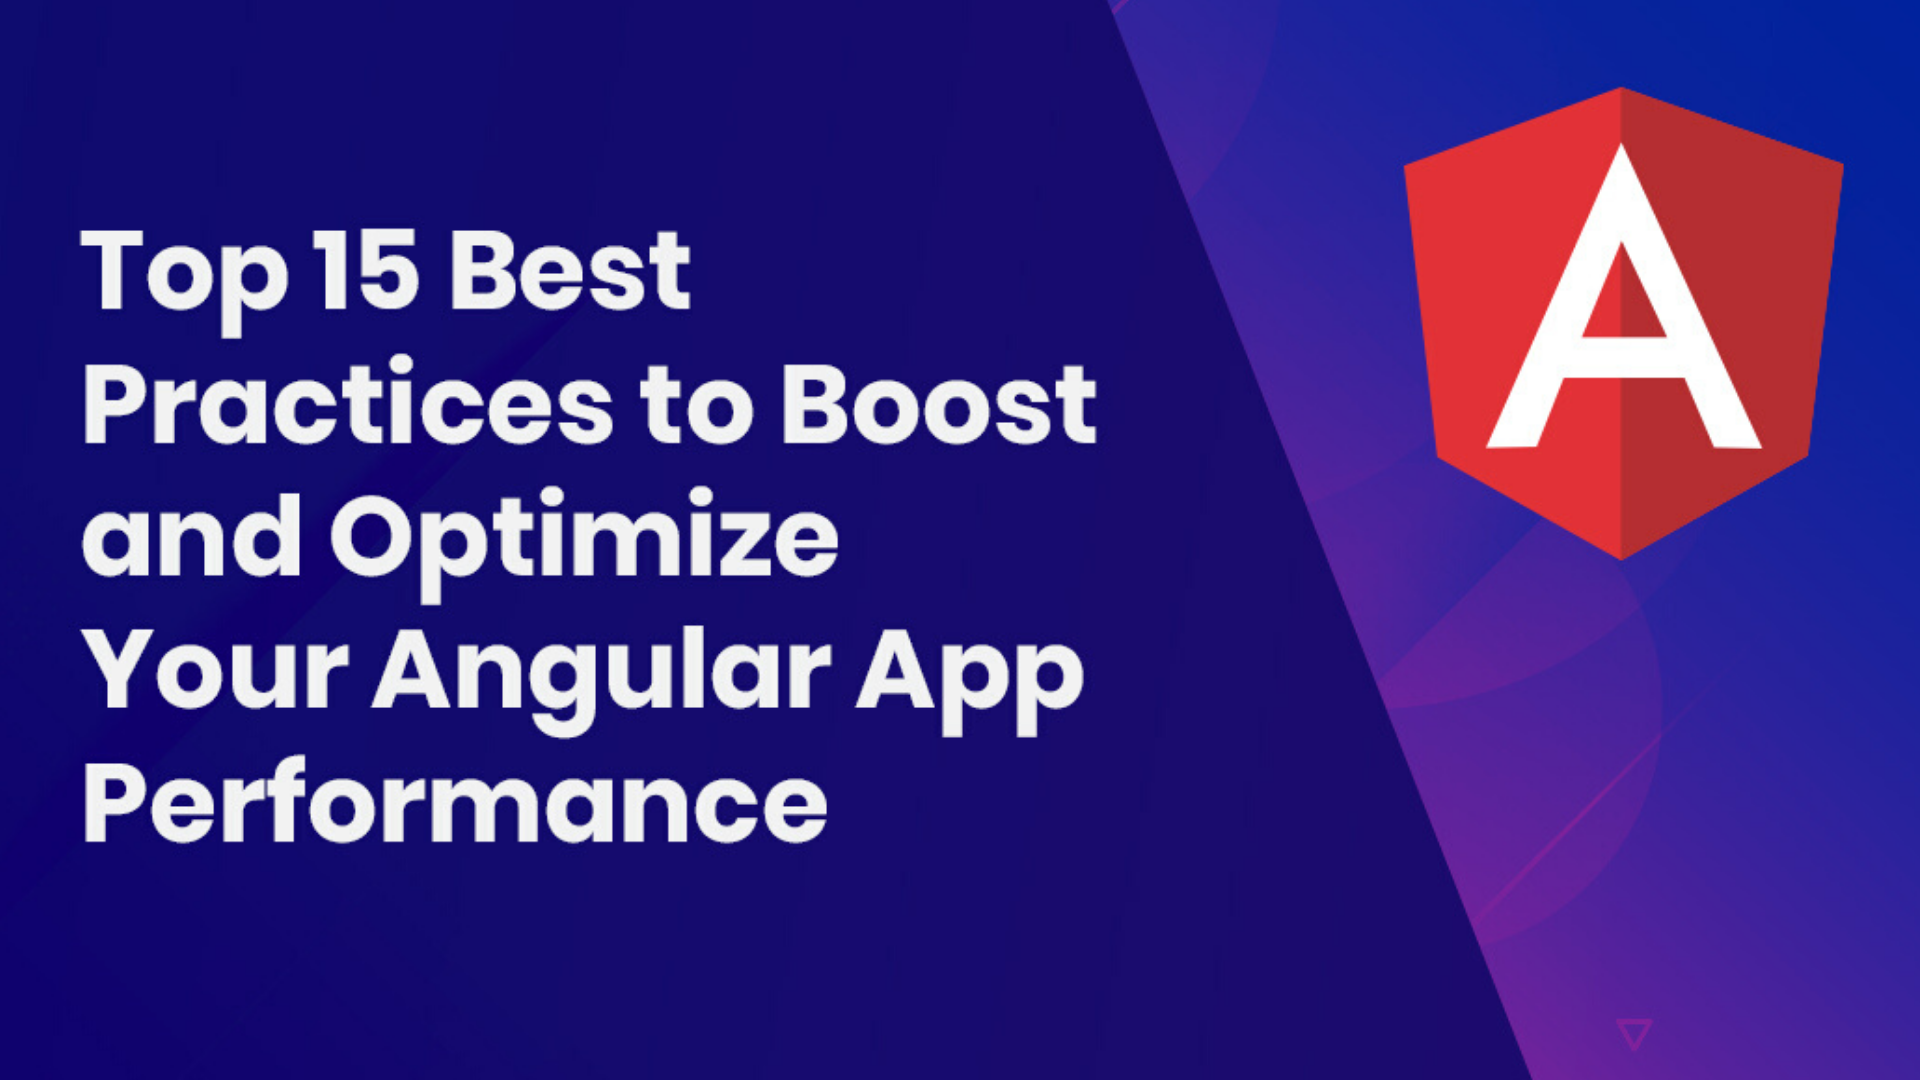 Top 15 Best Practices to Boost and Optimize Your Angular App Performance